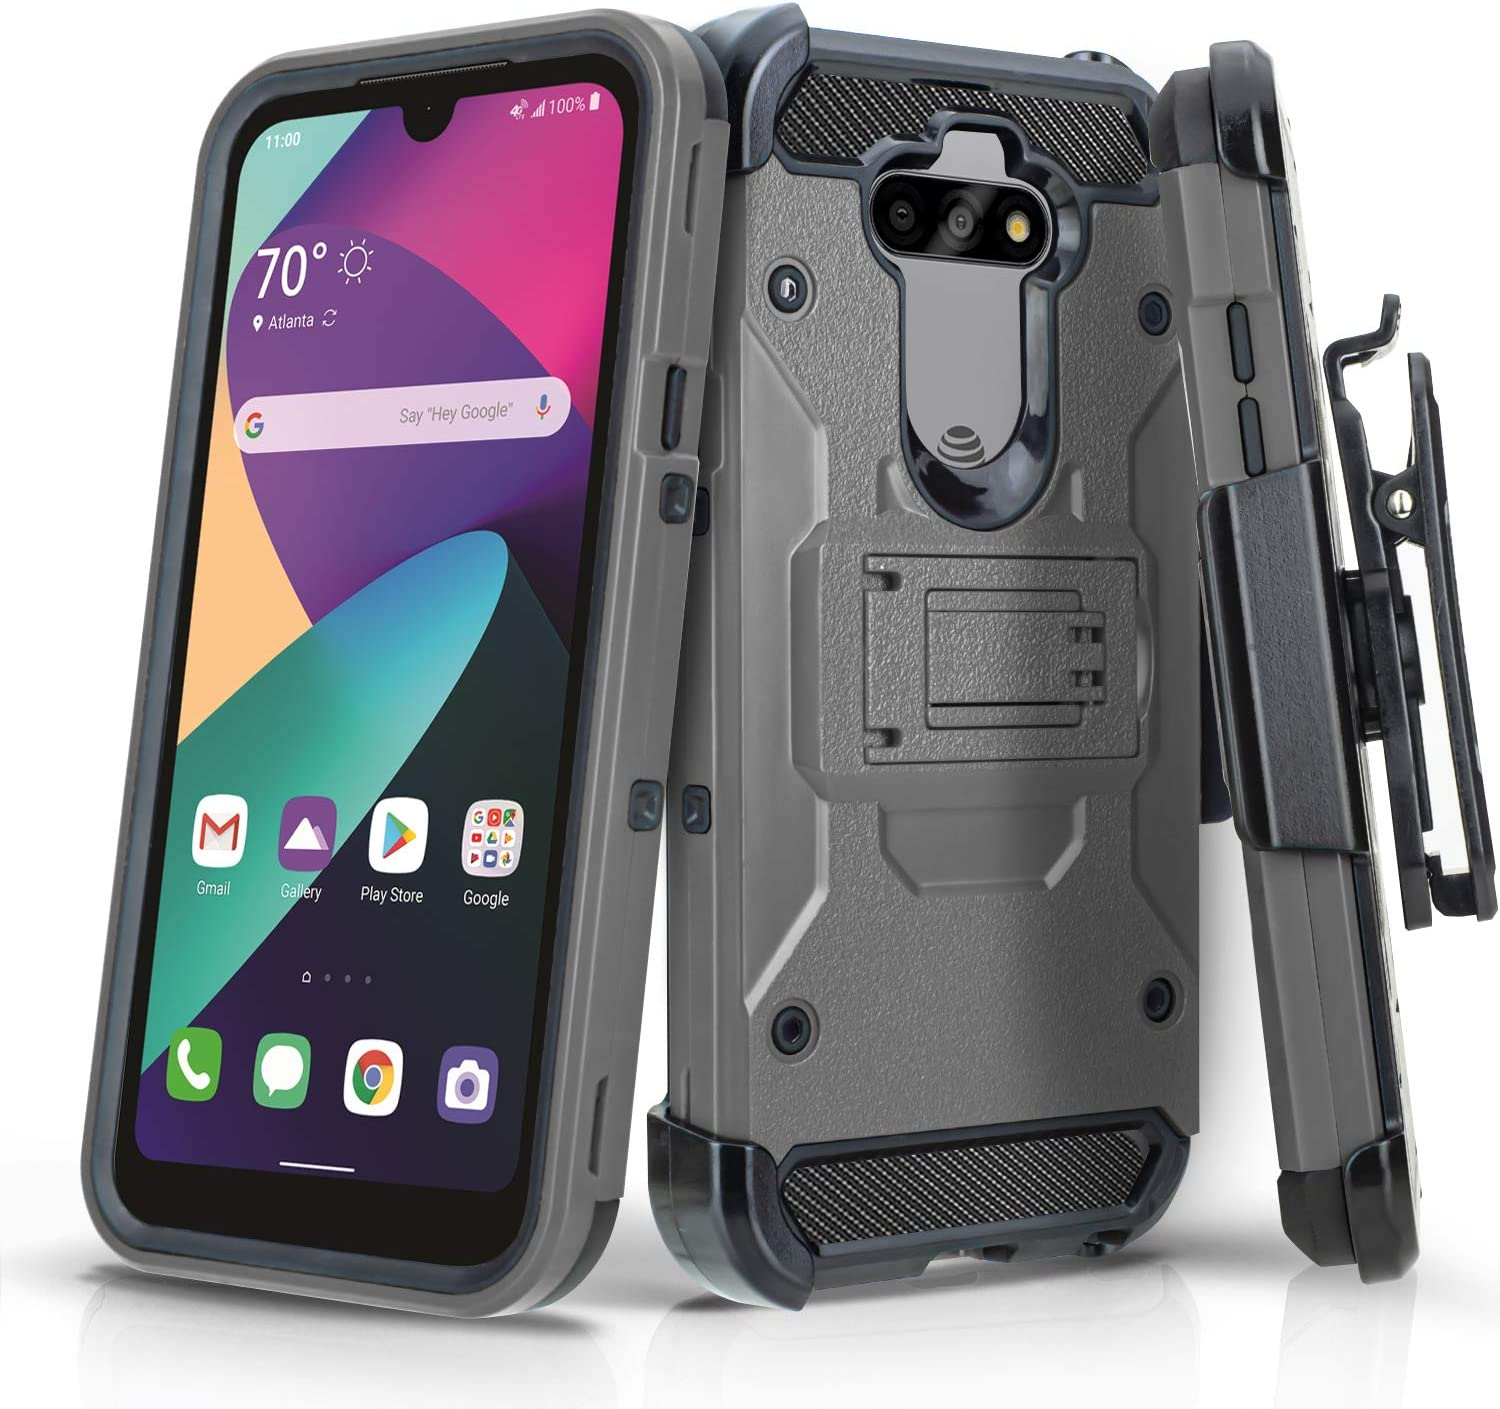 CasemartUSA Phone Case for [LG Phoenix 5 (AT&T Prepaid Phone)], [Tank Series][Gray] Heavy Duty Shockproof Cover with Built-in Kickstand & Swivel Belt Clip Holster for LG Phoenix 5 (AT&T)